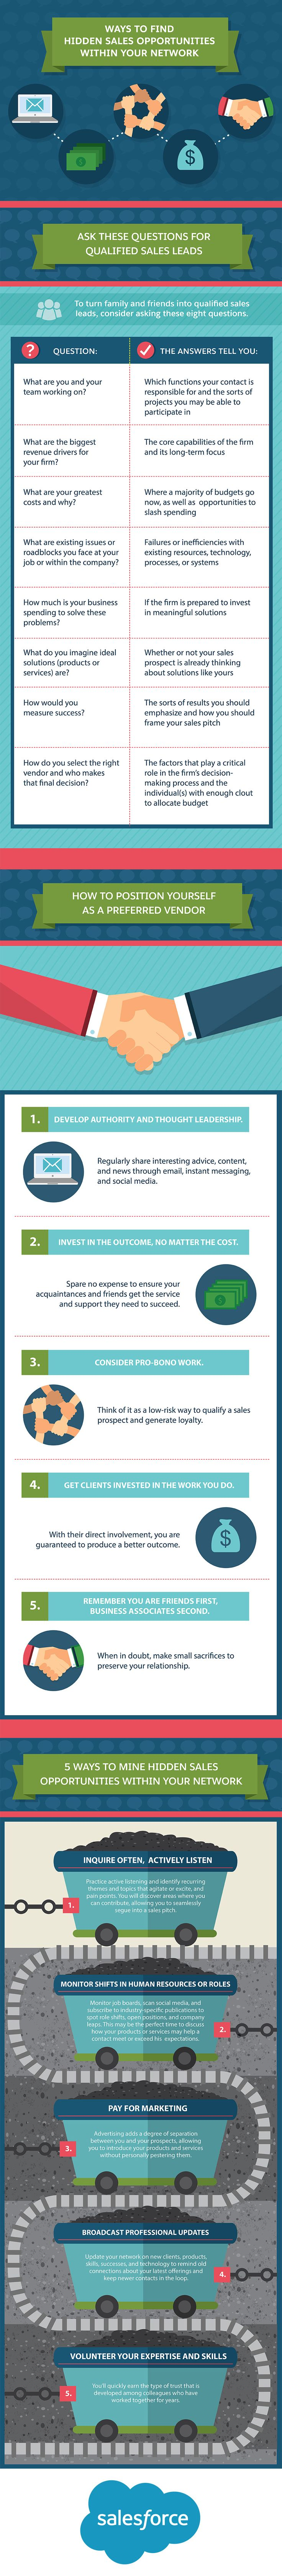 Ways to Find Hidden Sales Opportunities Within Your Network #infographic #Business #Sales